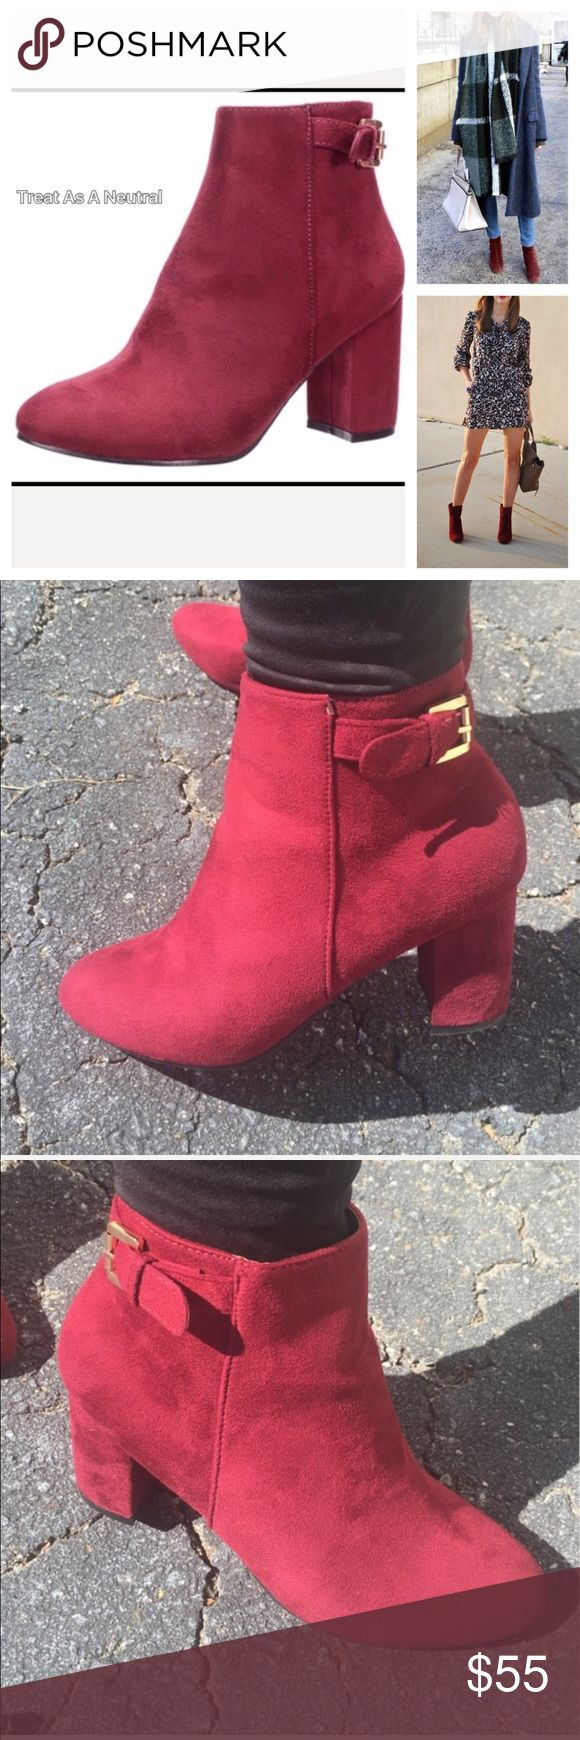 🆕Beautiful Wine Colored Boots Must Have For Fall Beautiful boots to give you that lovely pop of color. This is the it color this season. I have a ton of boots theses boots are now my number one pick. Suede like material. Two inch heel. Wine or burgundy in color. Inside the boots will have a darker appearance outside with the sun they will be brighter. Keep in mind color will be slightly different in person. Price not negotiable unless bundling. Go a size up as these do run a little small…